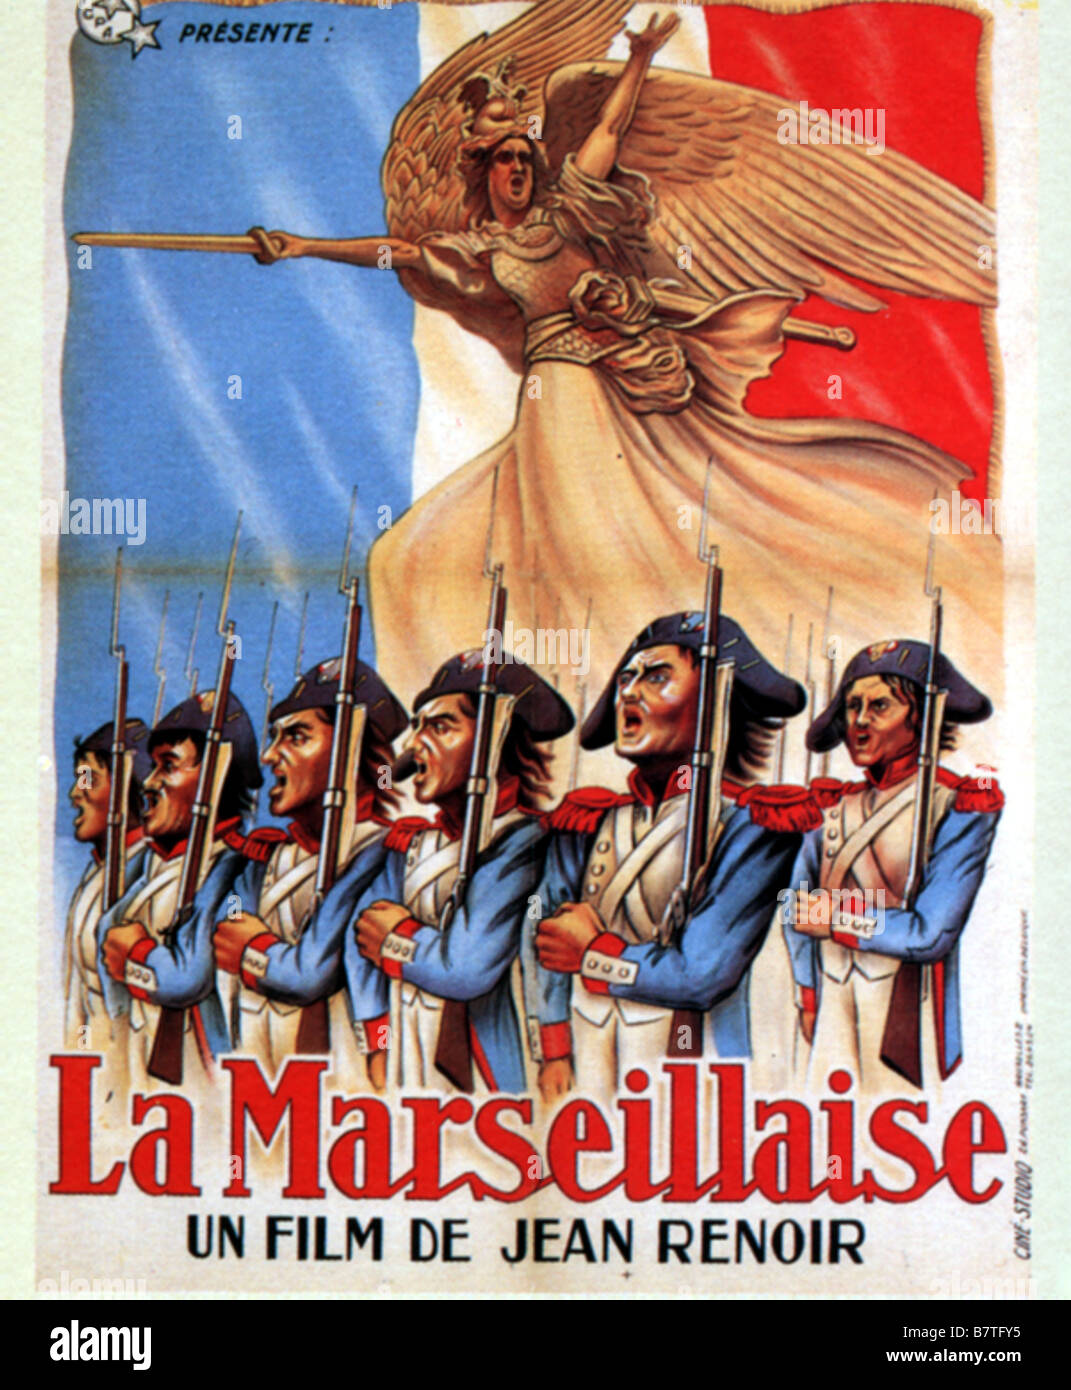 Marseillaise la marseillaise la ann e 1938 france affiche poster stock photo royalty free image for Poster revolution france